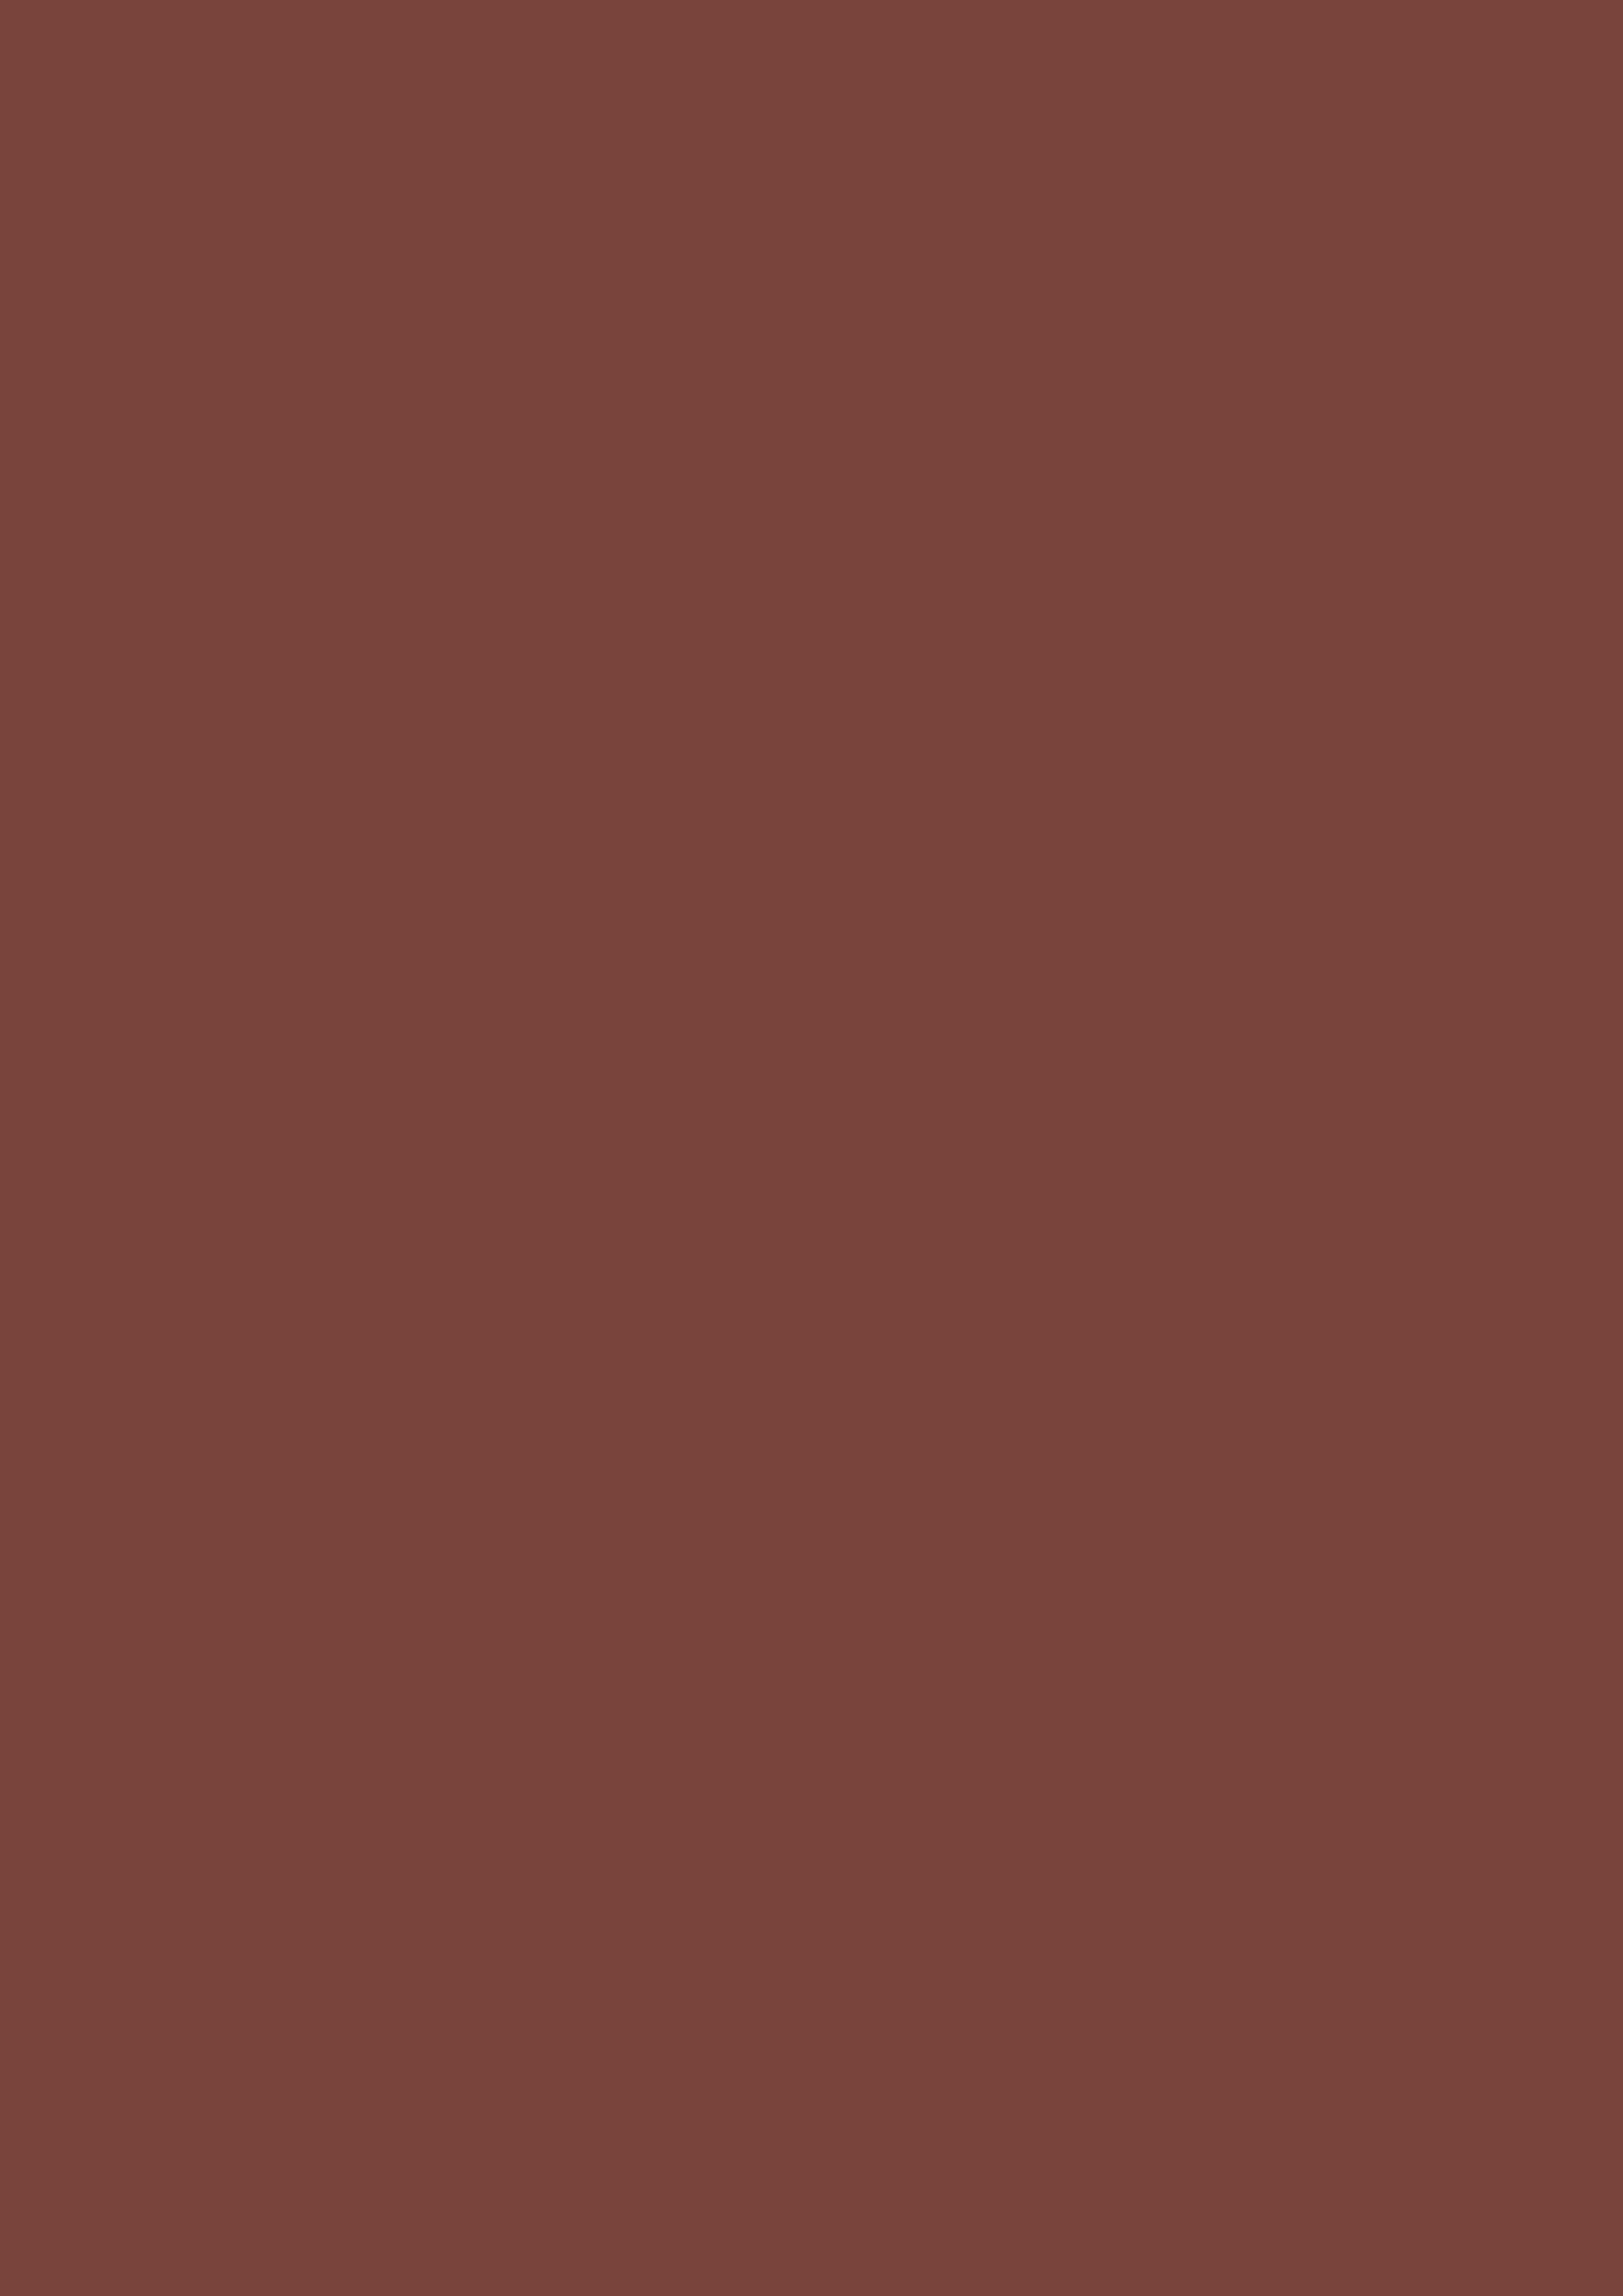 2480x3508 Medium Tuscan Red Solid Color Background